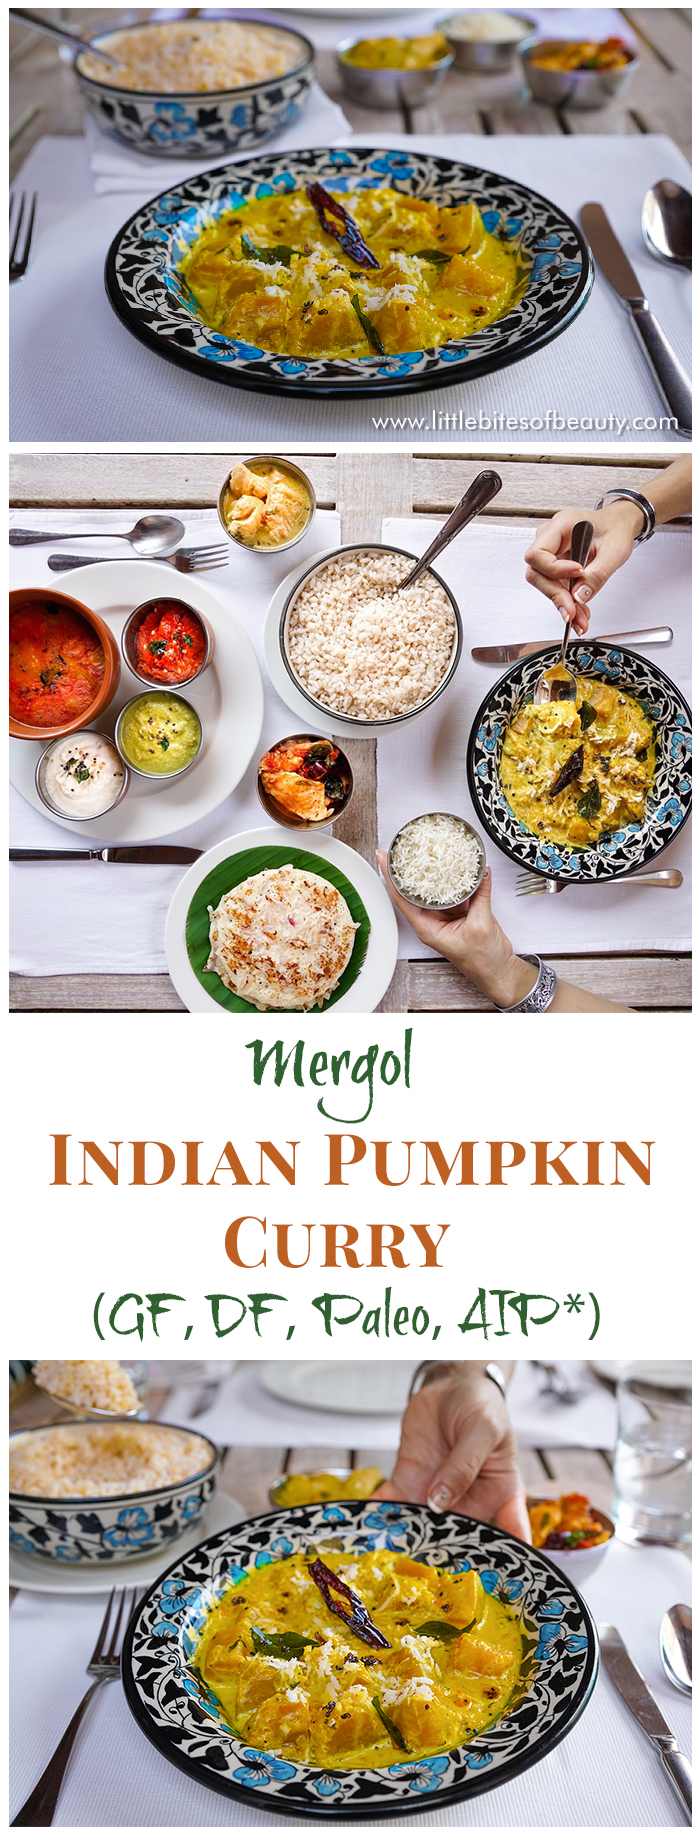 Mergol. Indian Style Pumpkin Curry (GF, DF, Paleo, AIP*)